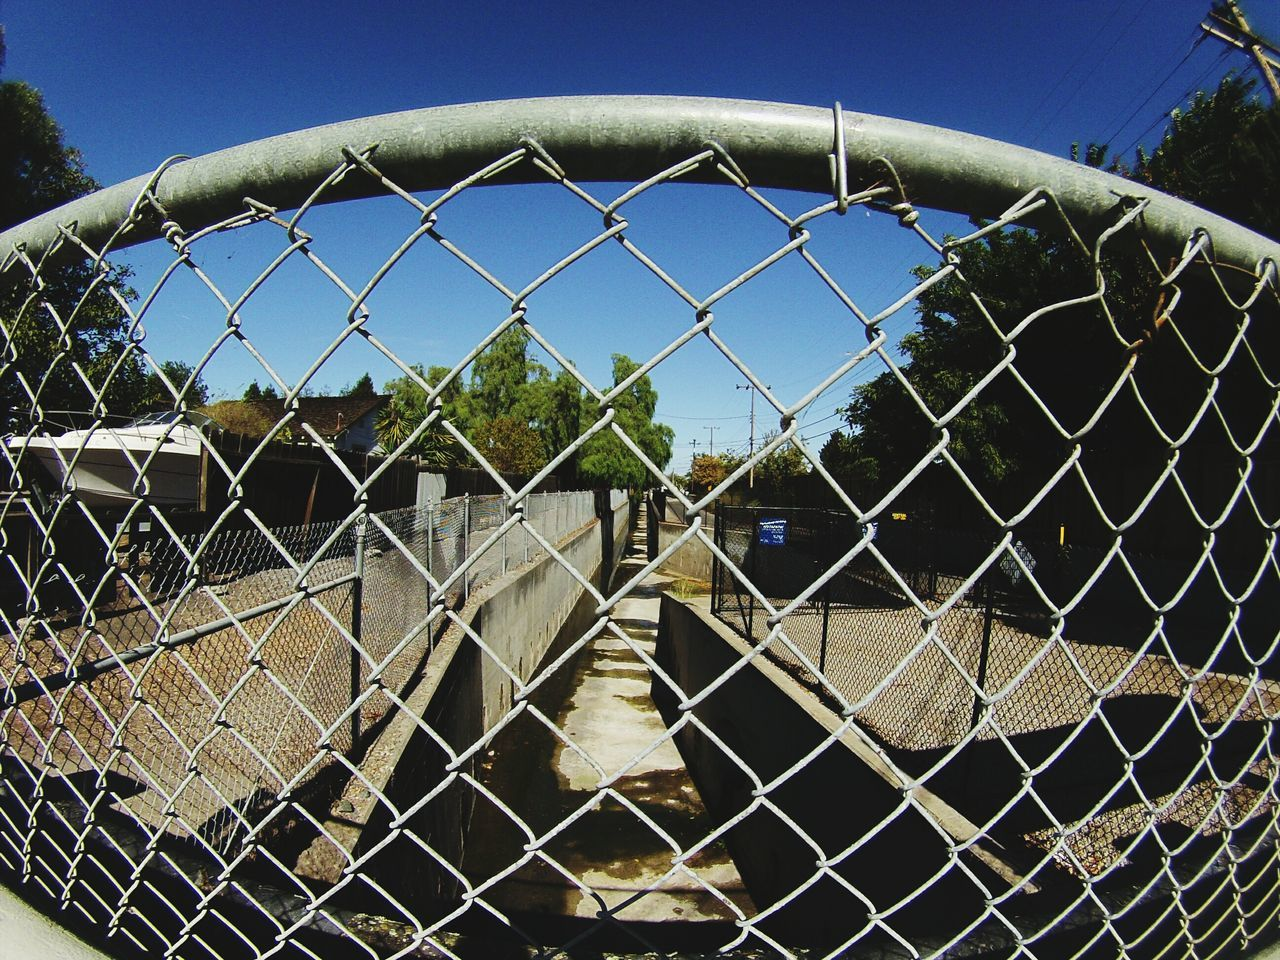 chainlink fence, metal, protection, safety, day, security, outdoors, no people, architecture, building exterior, city, clear sky, sky, close-up